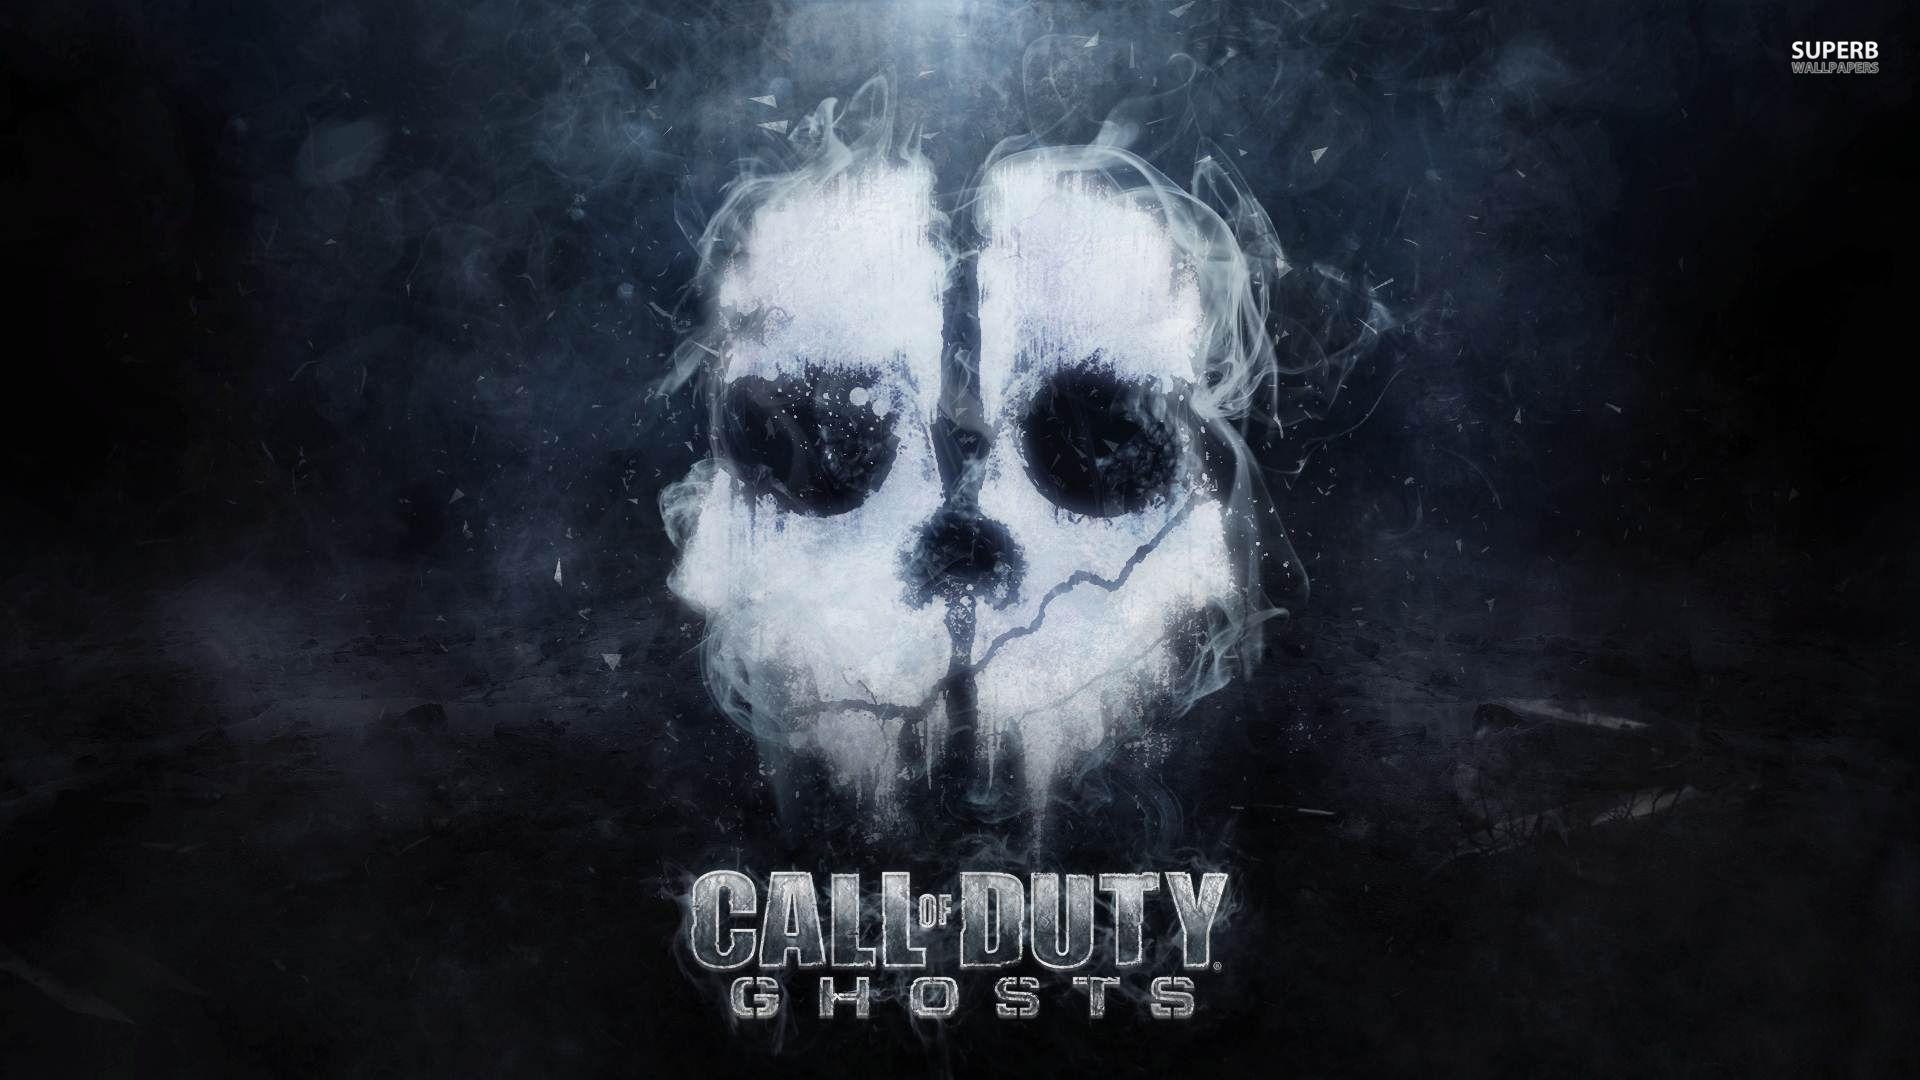 Some Online Beginner Tips You Need To Know For Callofdutyghosts